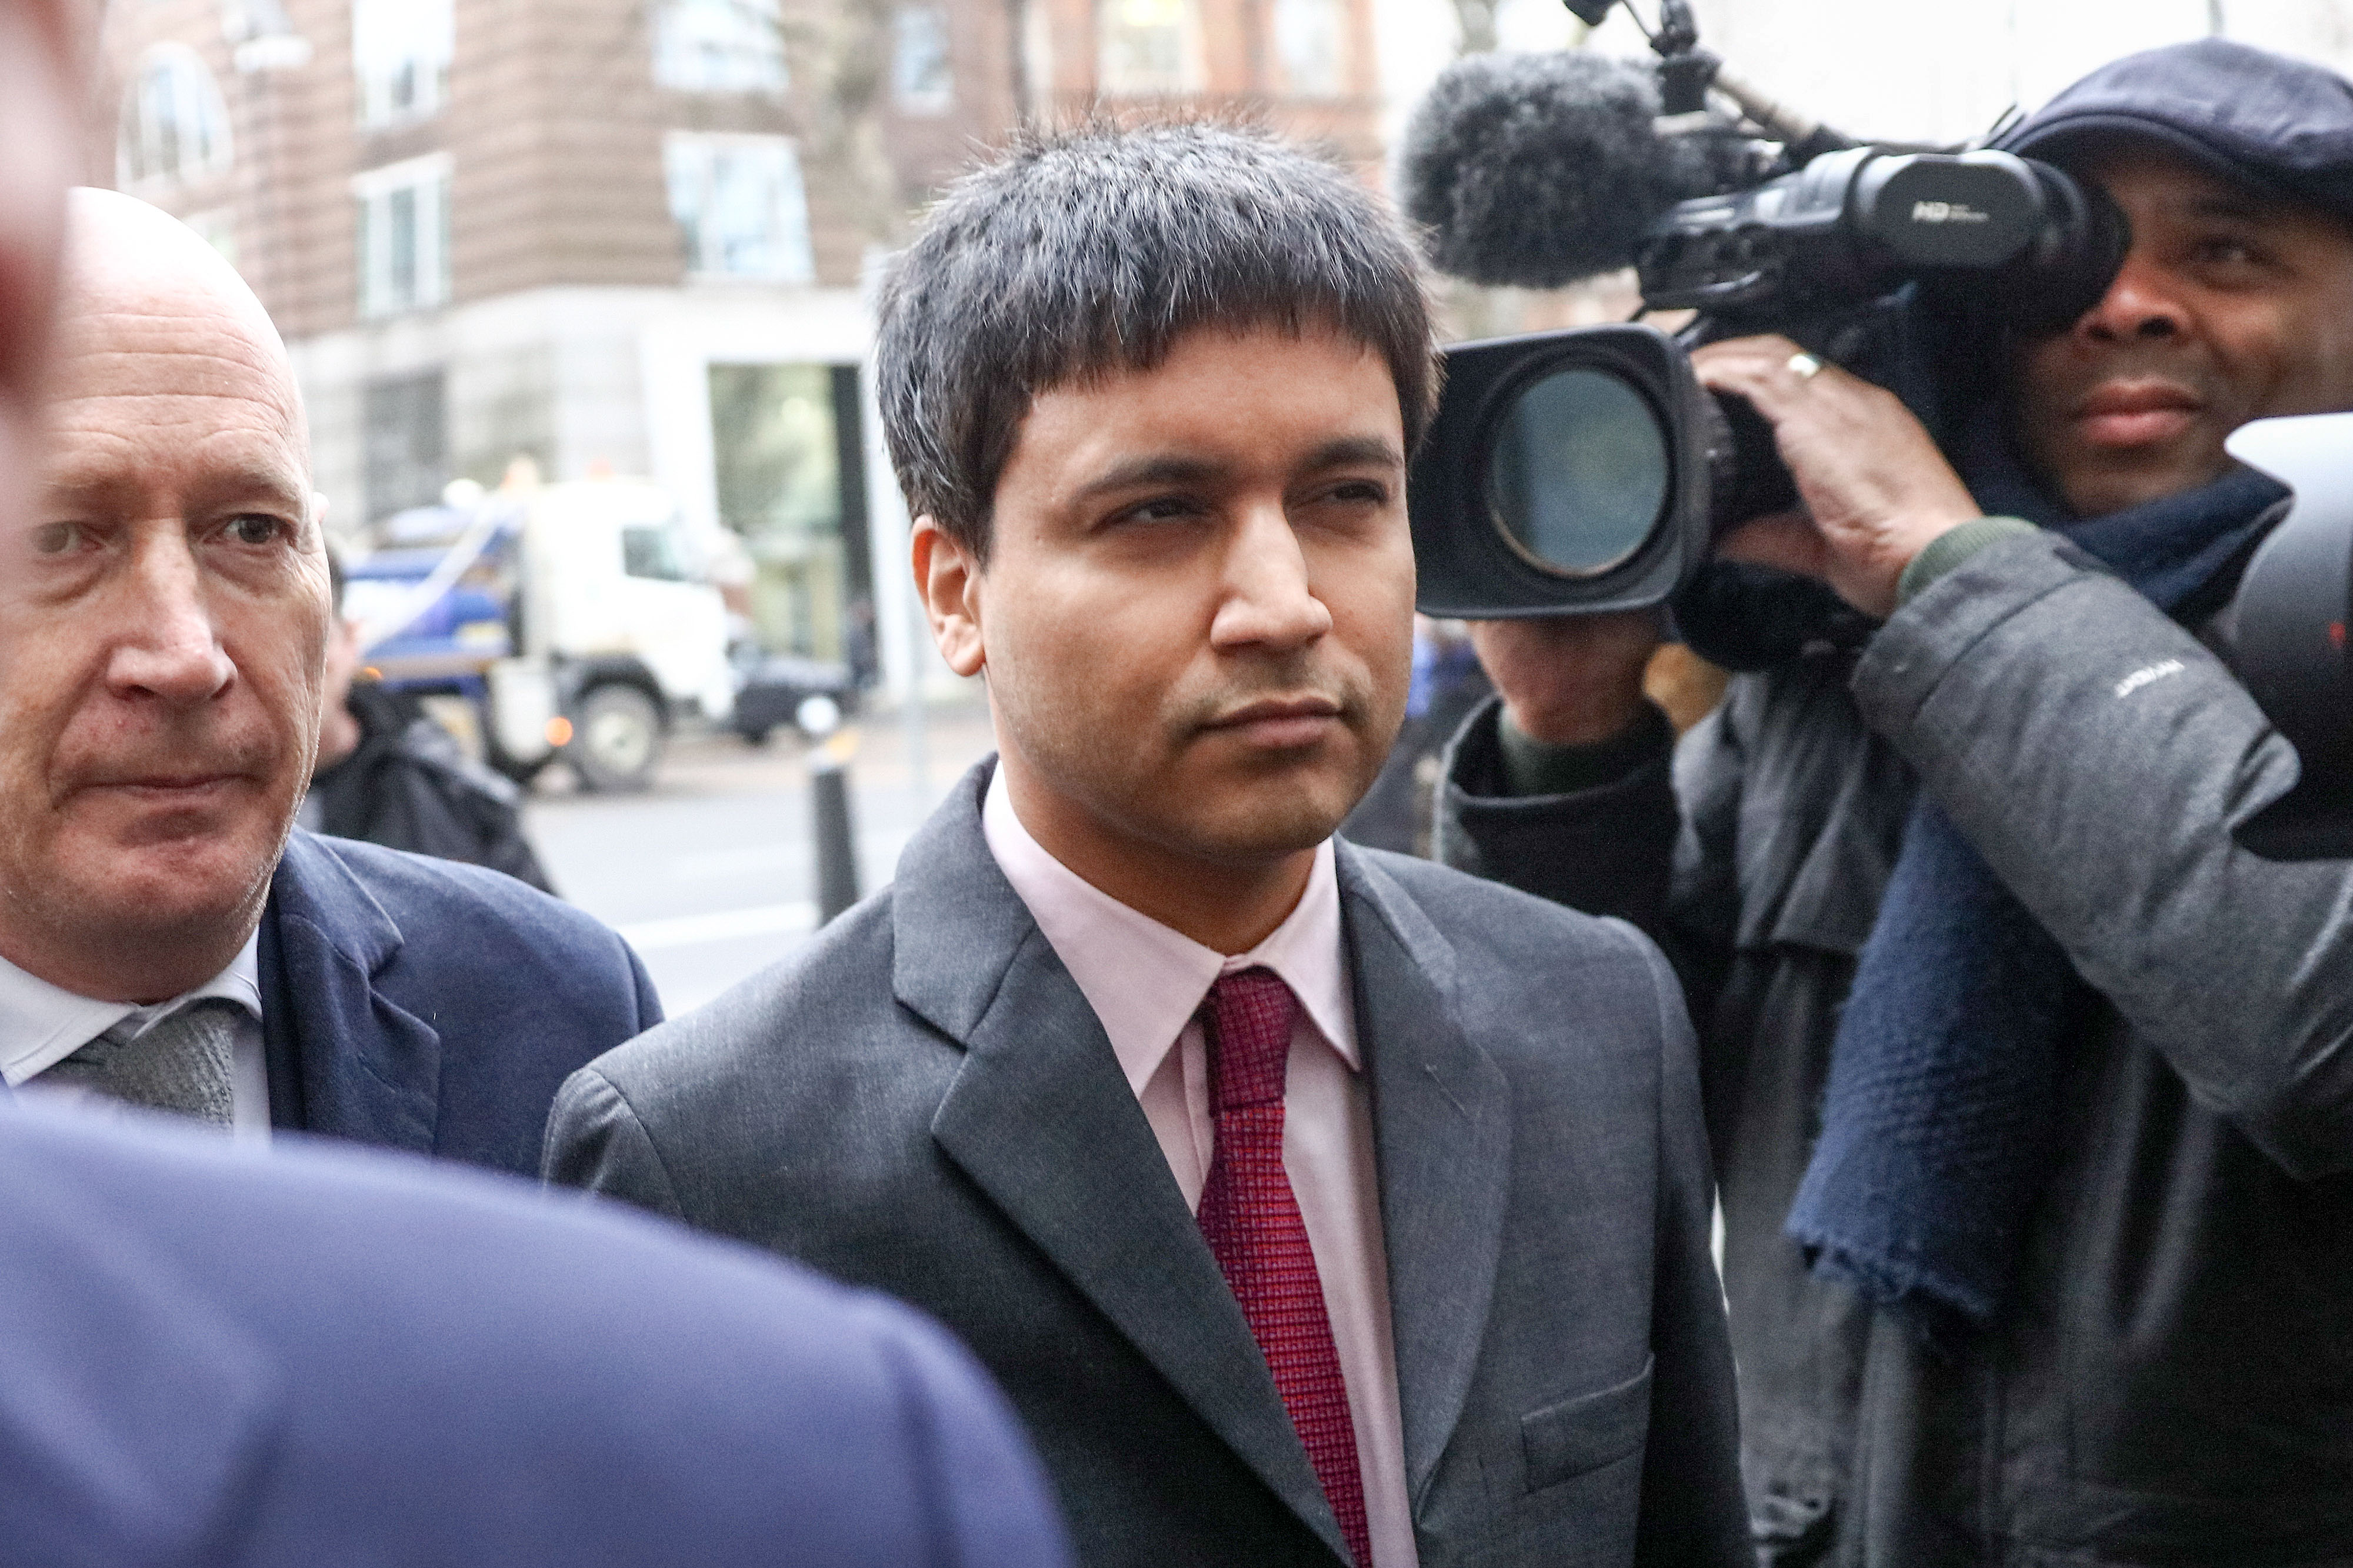 Flash-Crash Trader Navinder Singh Sarao Attends An Extradition Hearing At Westminster Magistrates Court